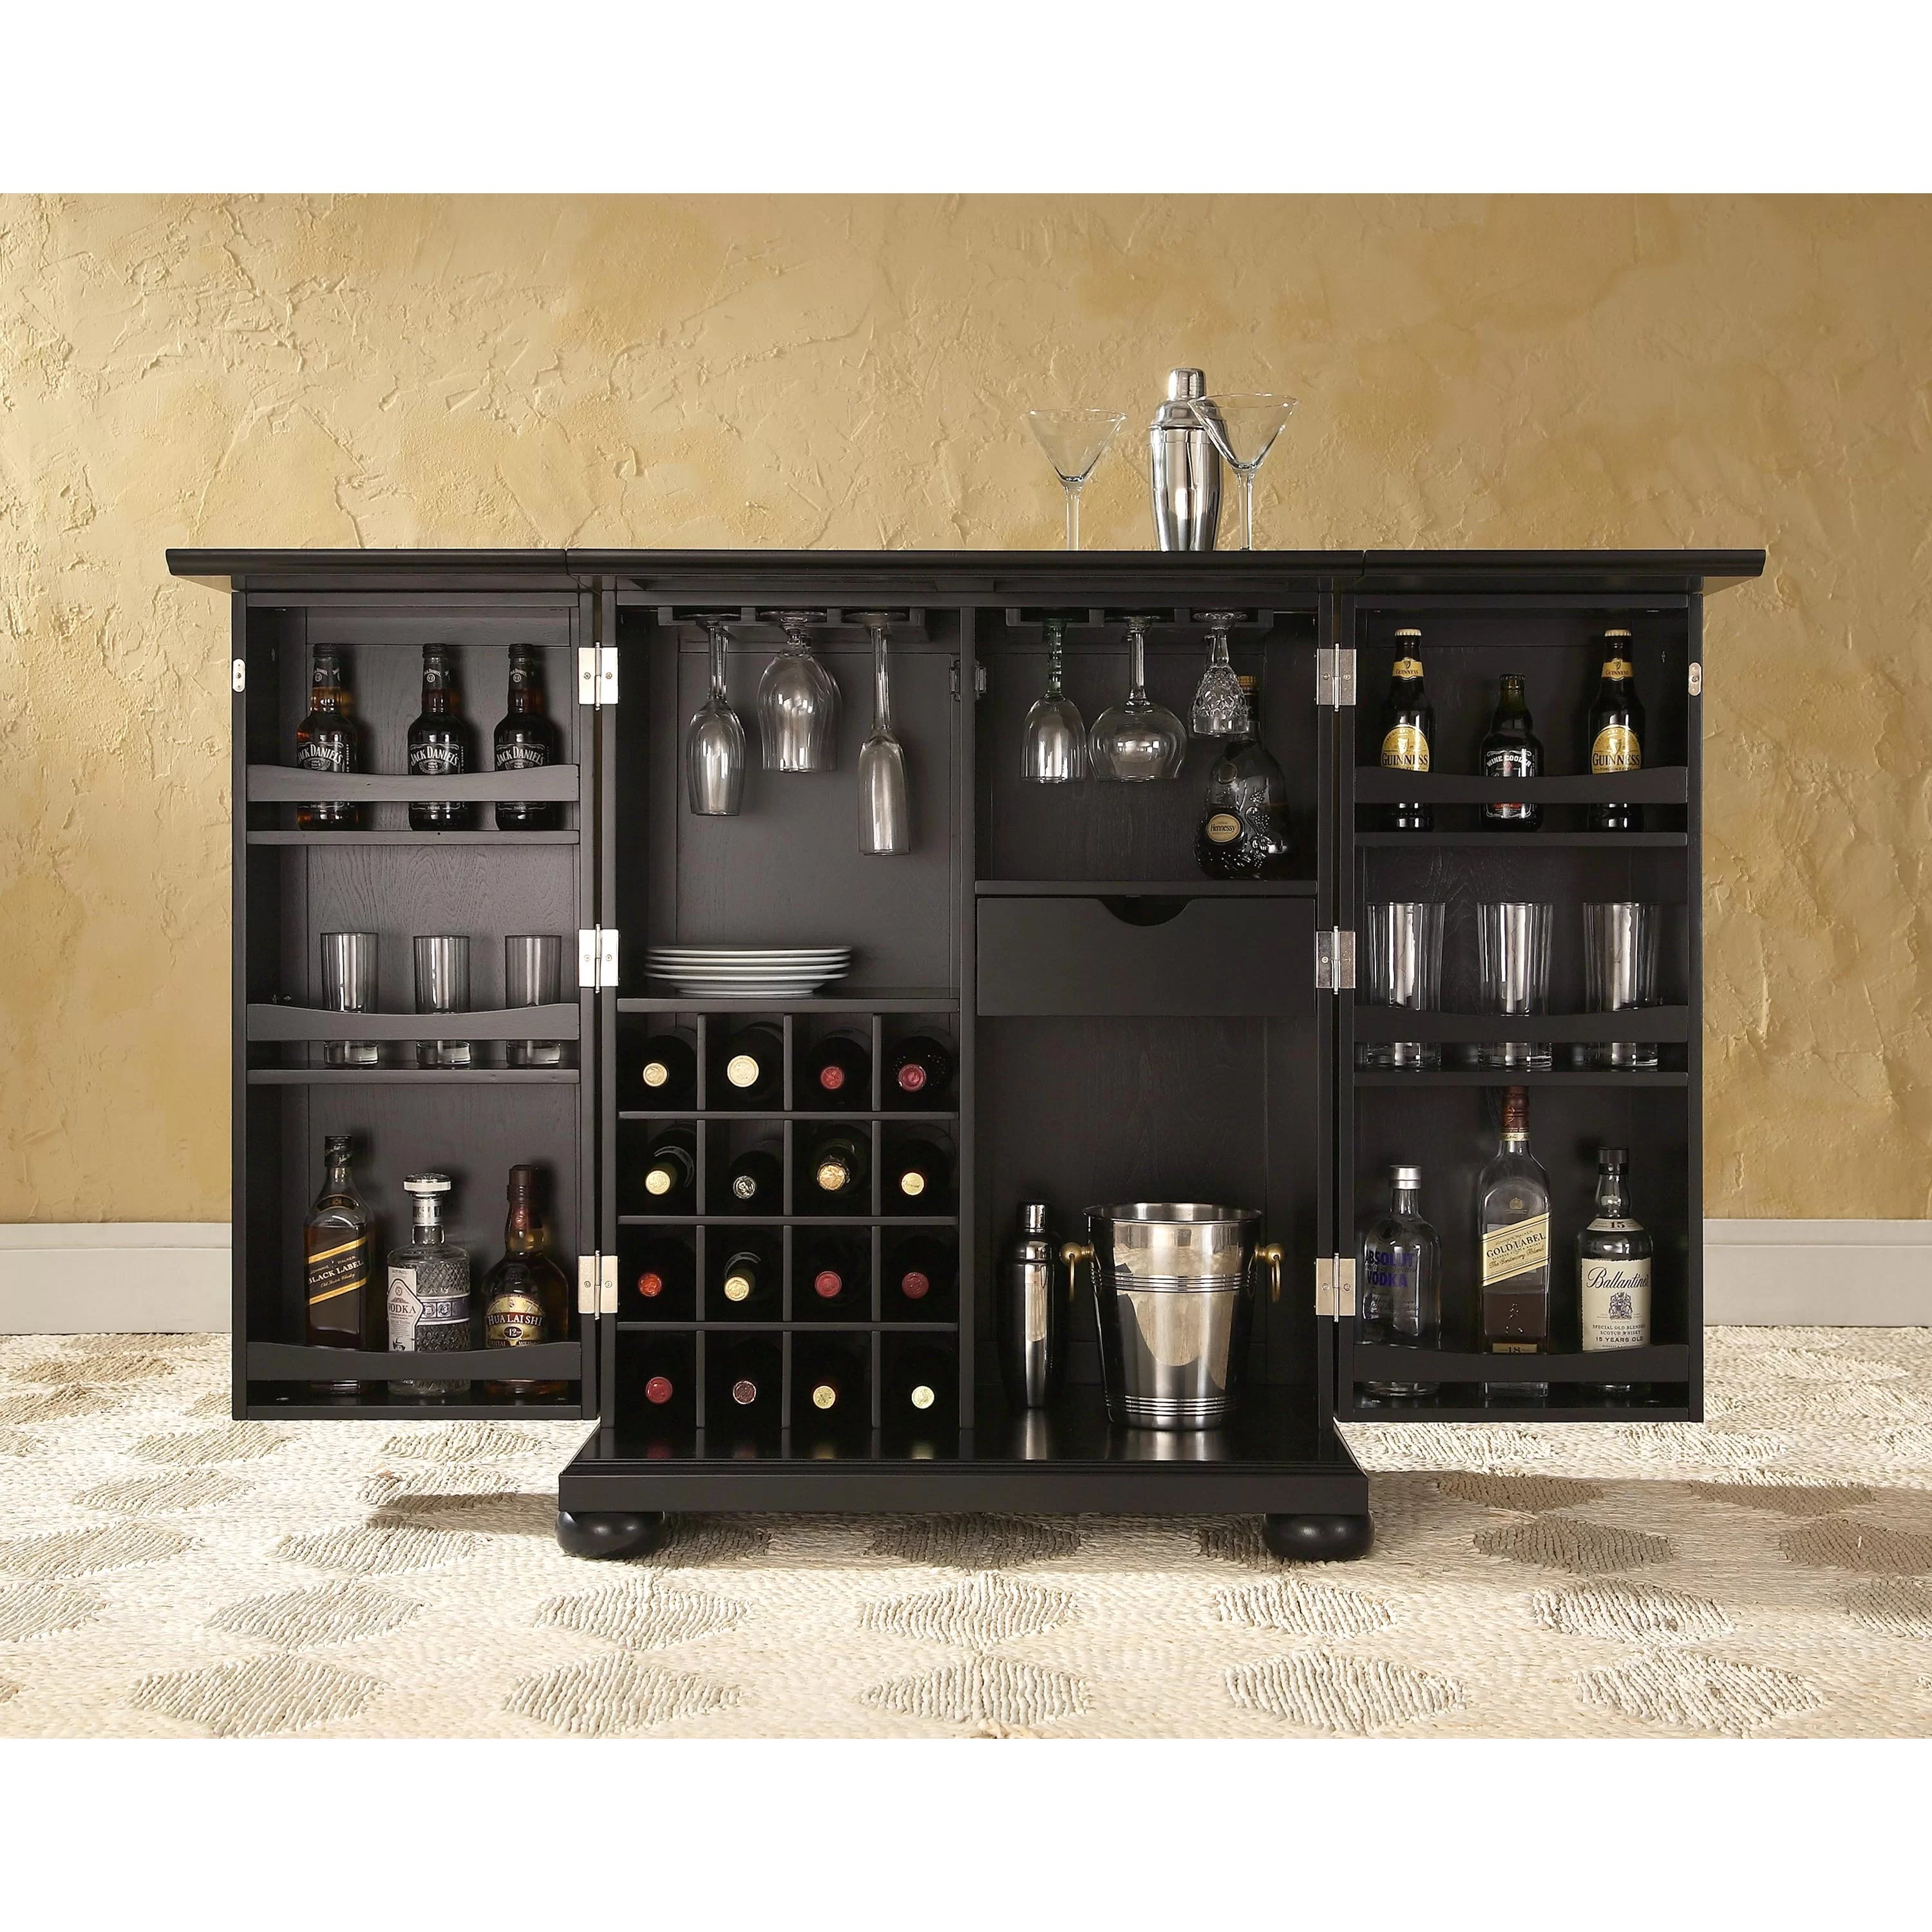 Darby Home Co Pottstown Expandable Bar Cabinet with Wine